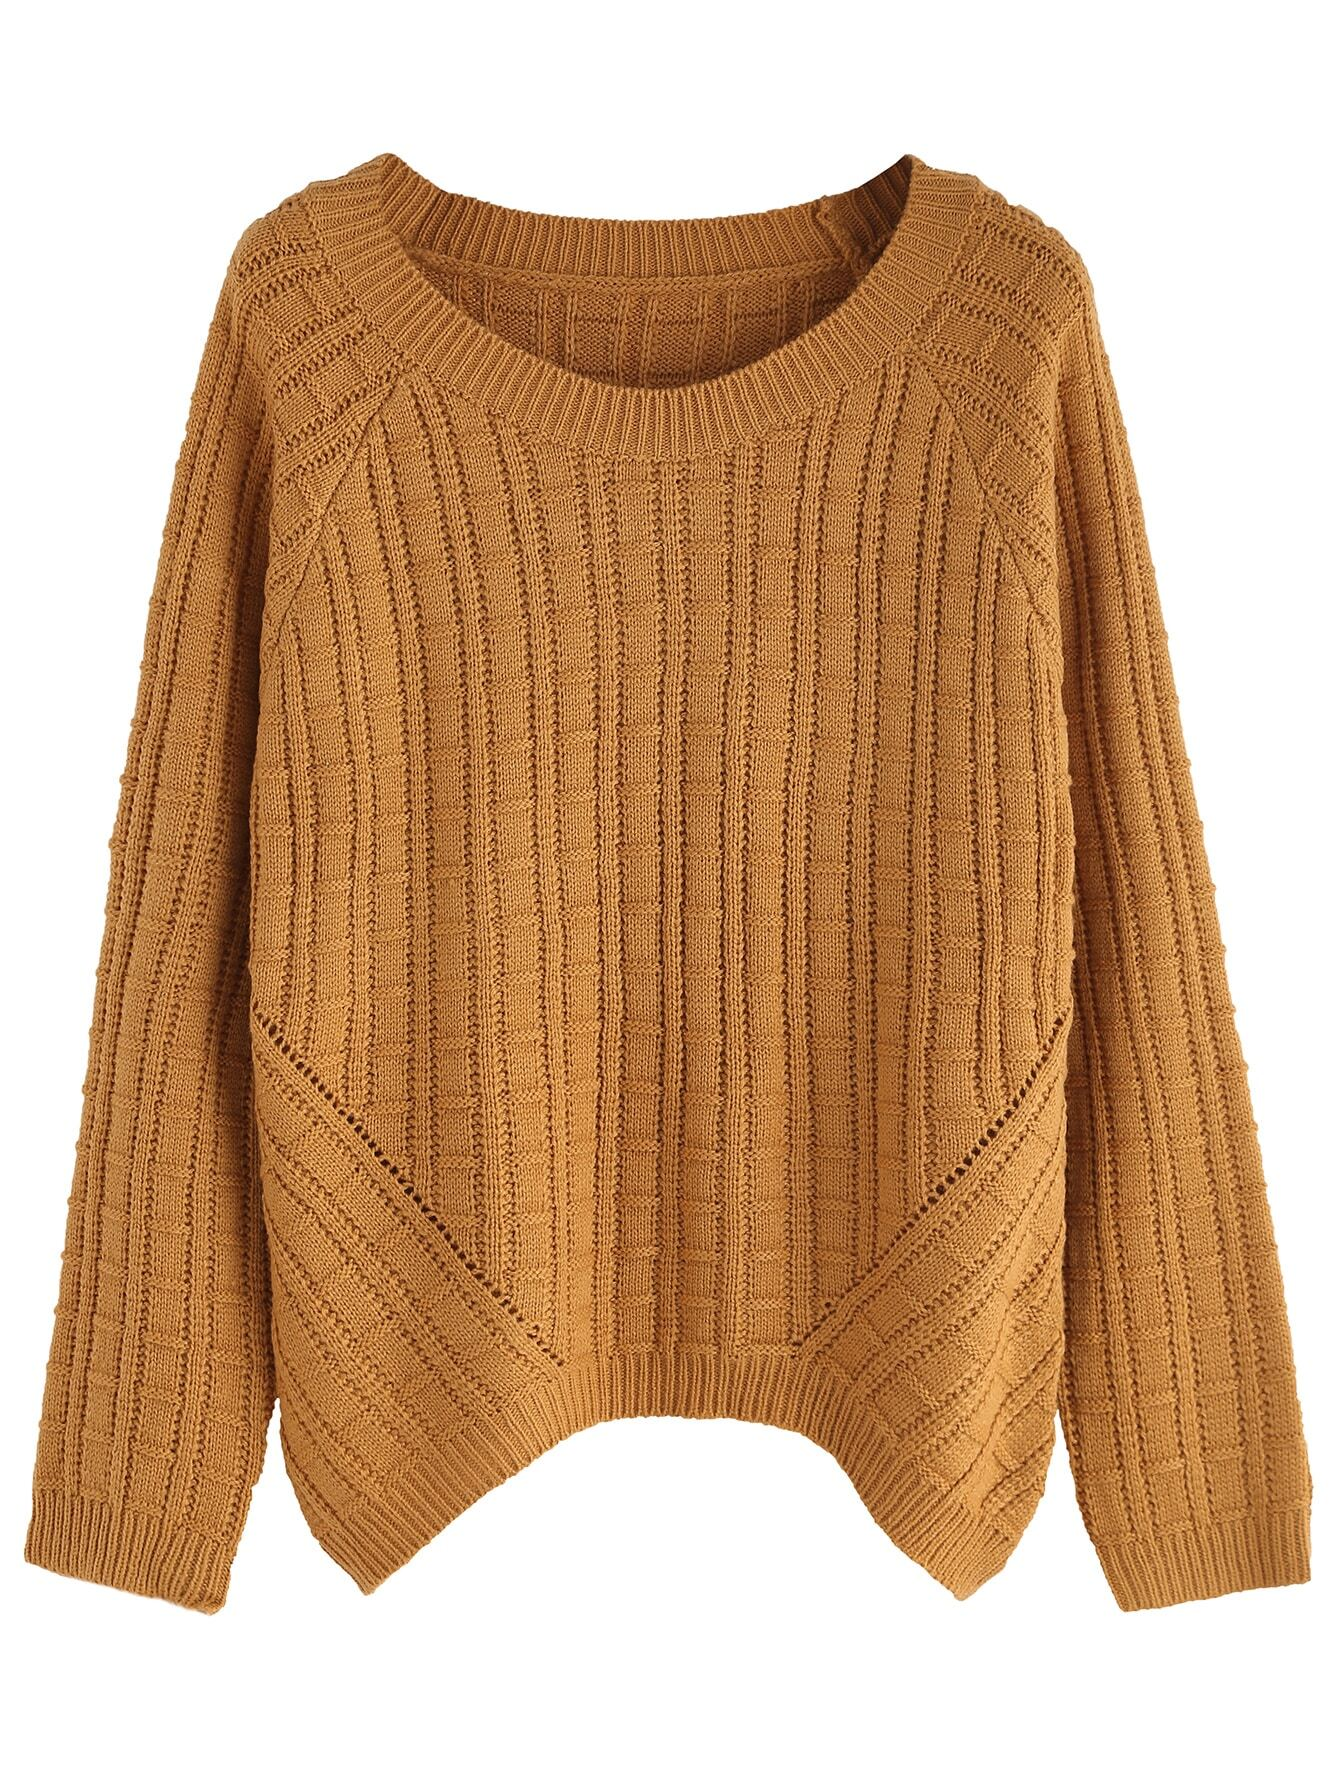 Khaki Ribbed Knit Raglan Sleeve Sweater sweater160915002